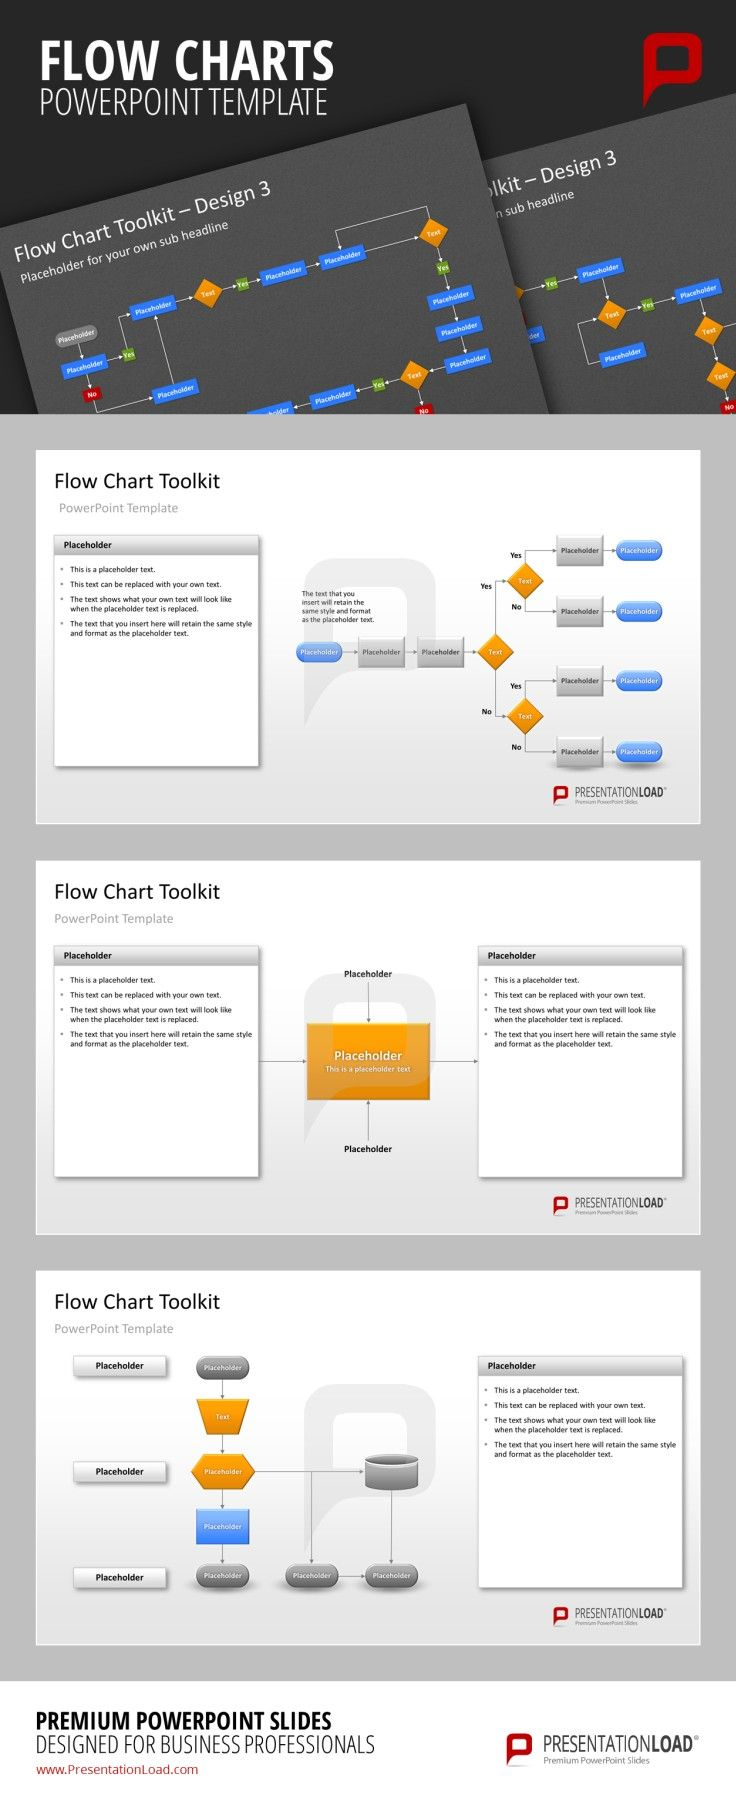 Flow charts powerpoint templates create complex flow charts in flow charts powerpoint templates create complex flow charts in powerpoint with only a few clicks by toneelgroepblik Choice Image